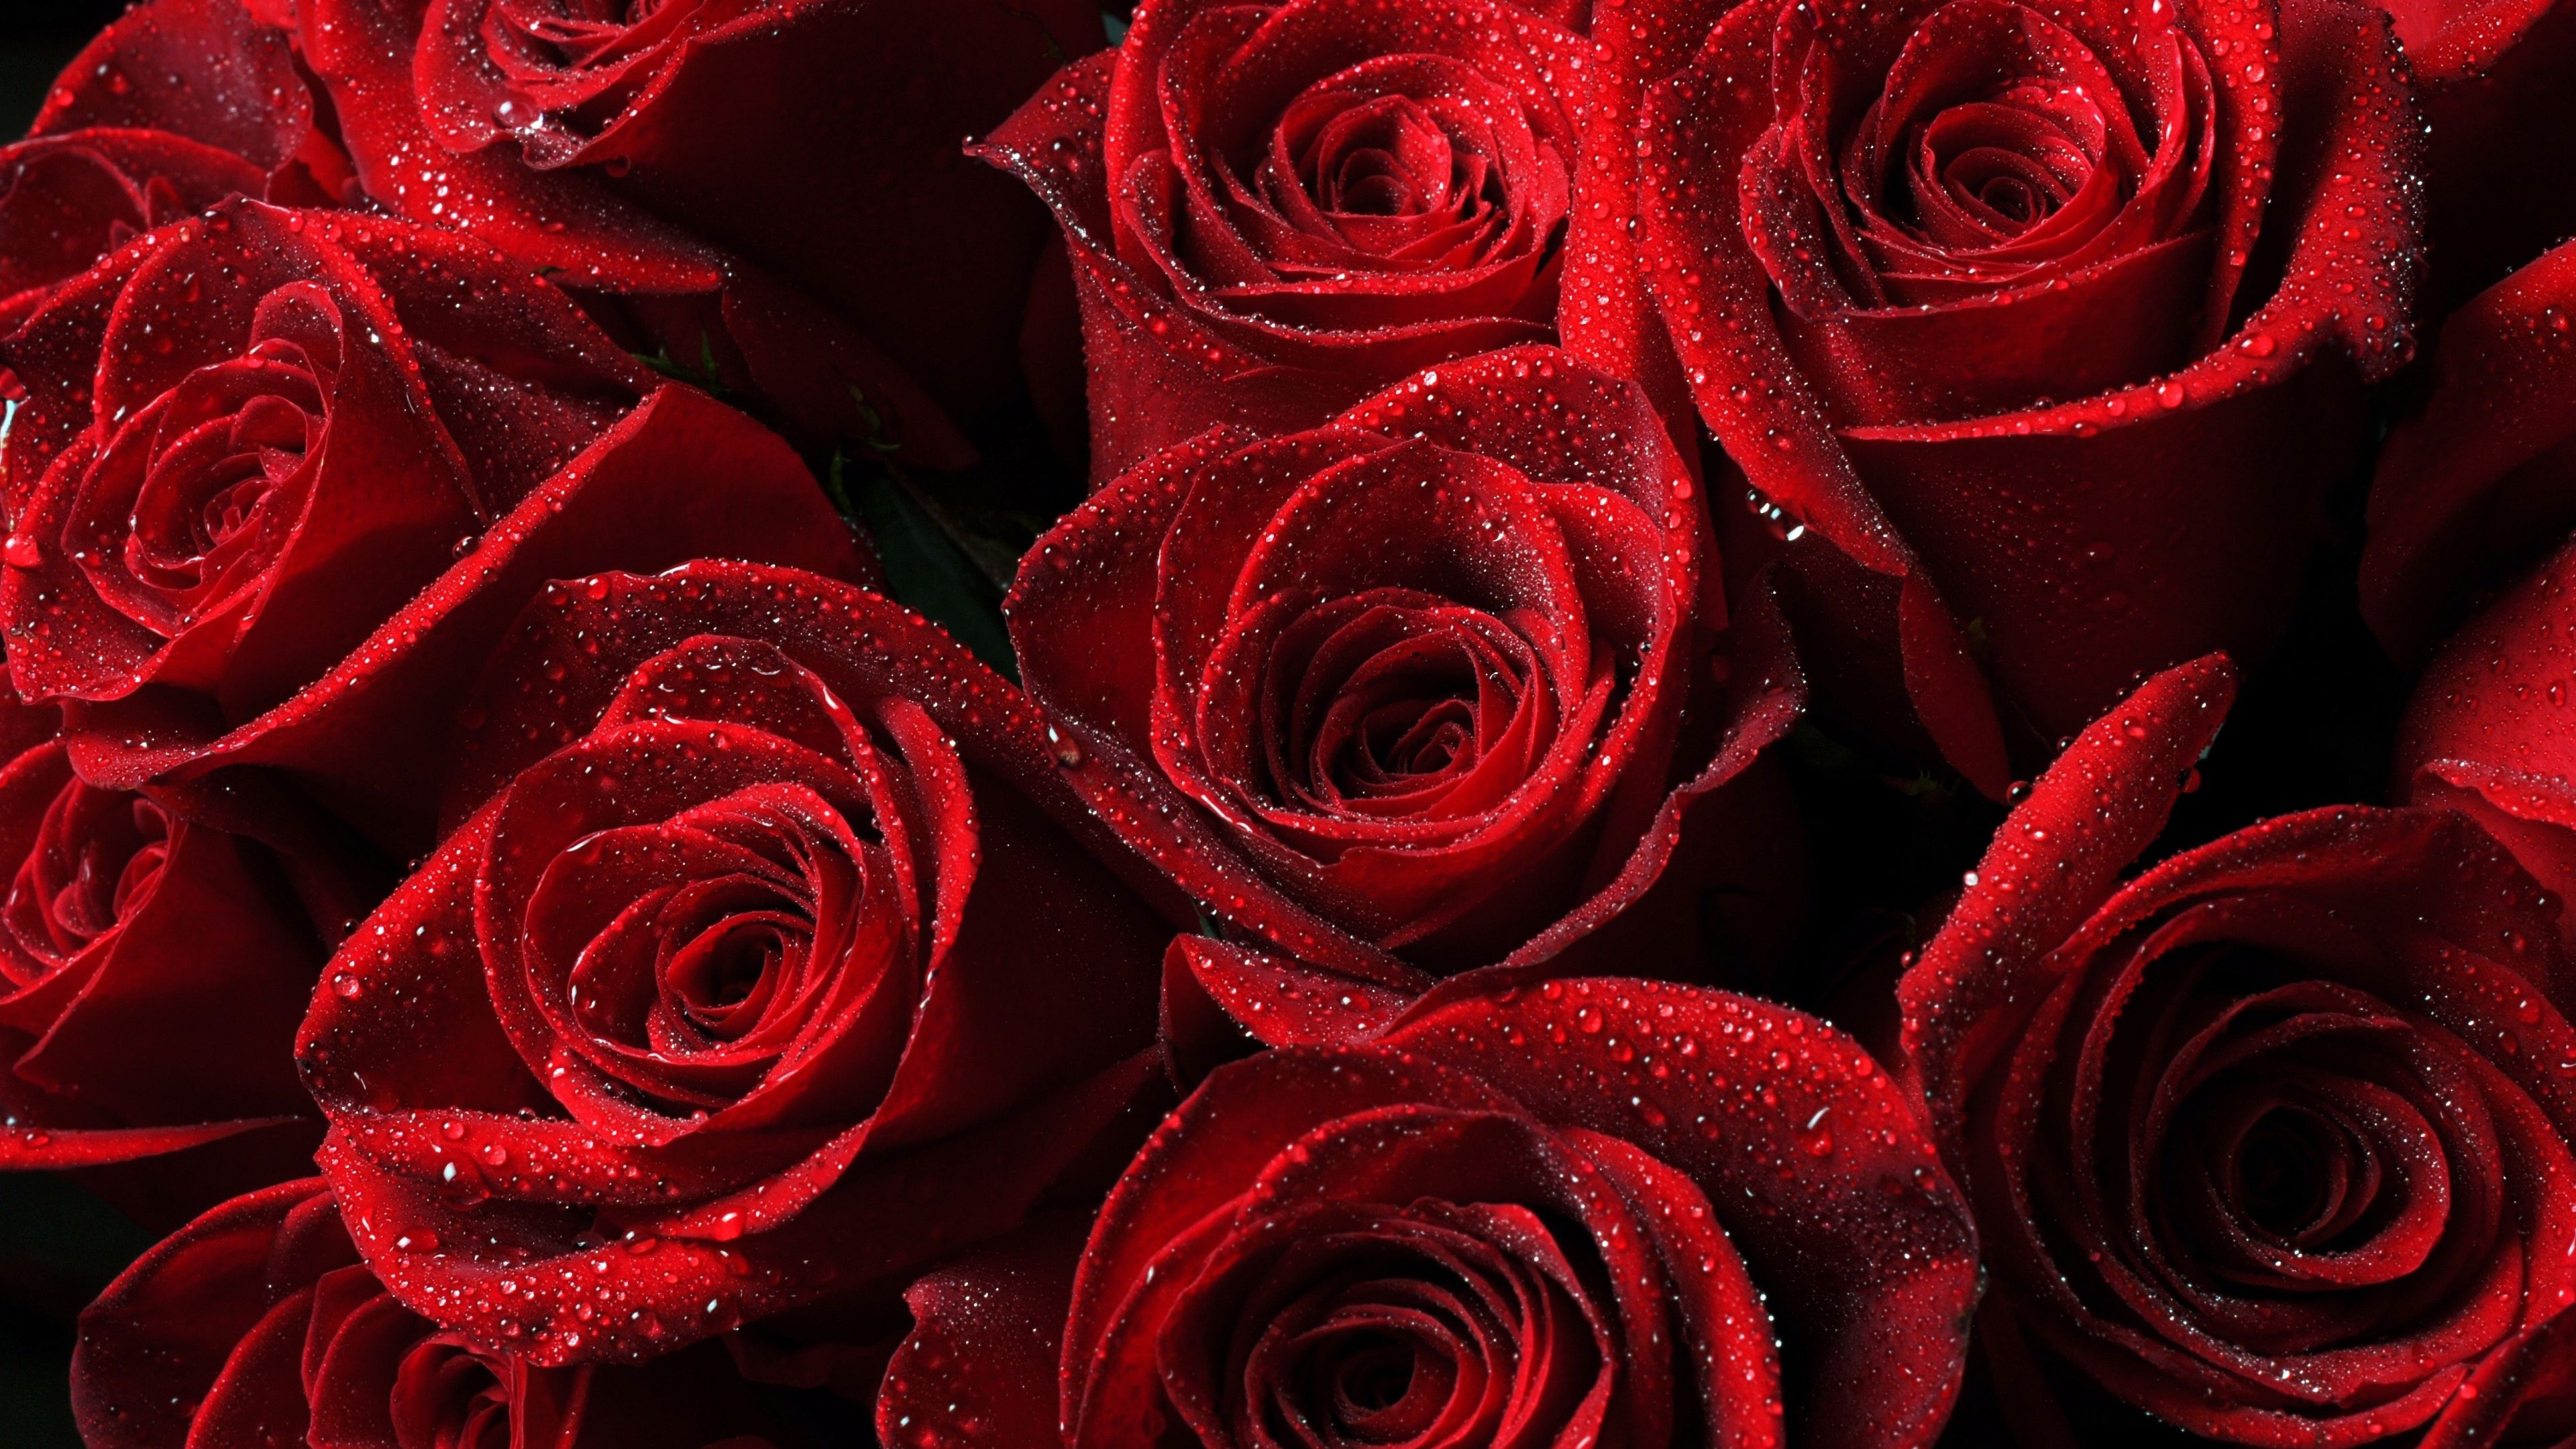 Ultra Hd Wallpaper 3840x2160 Roses Red Drops Petals 4k Ultra Hd Hd Background Jpg 3840 2160 Rose Wallpaper Red Roses Wallpaper Red Rose Flower